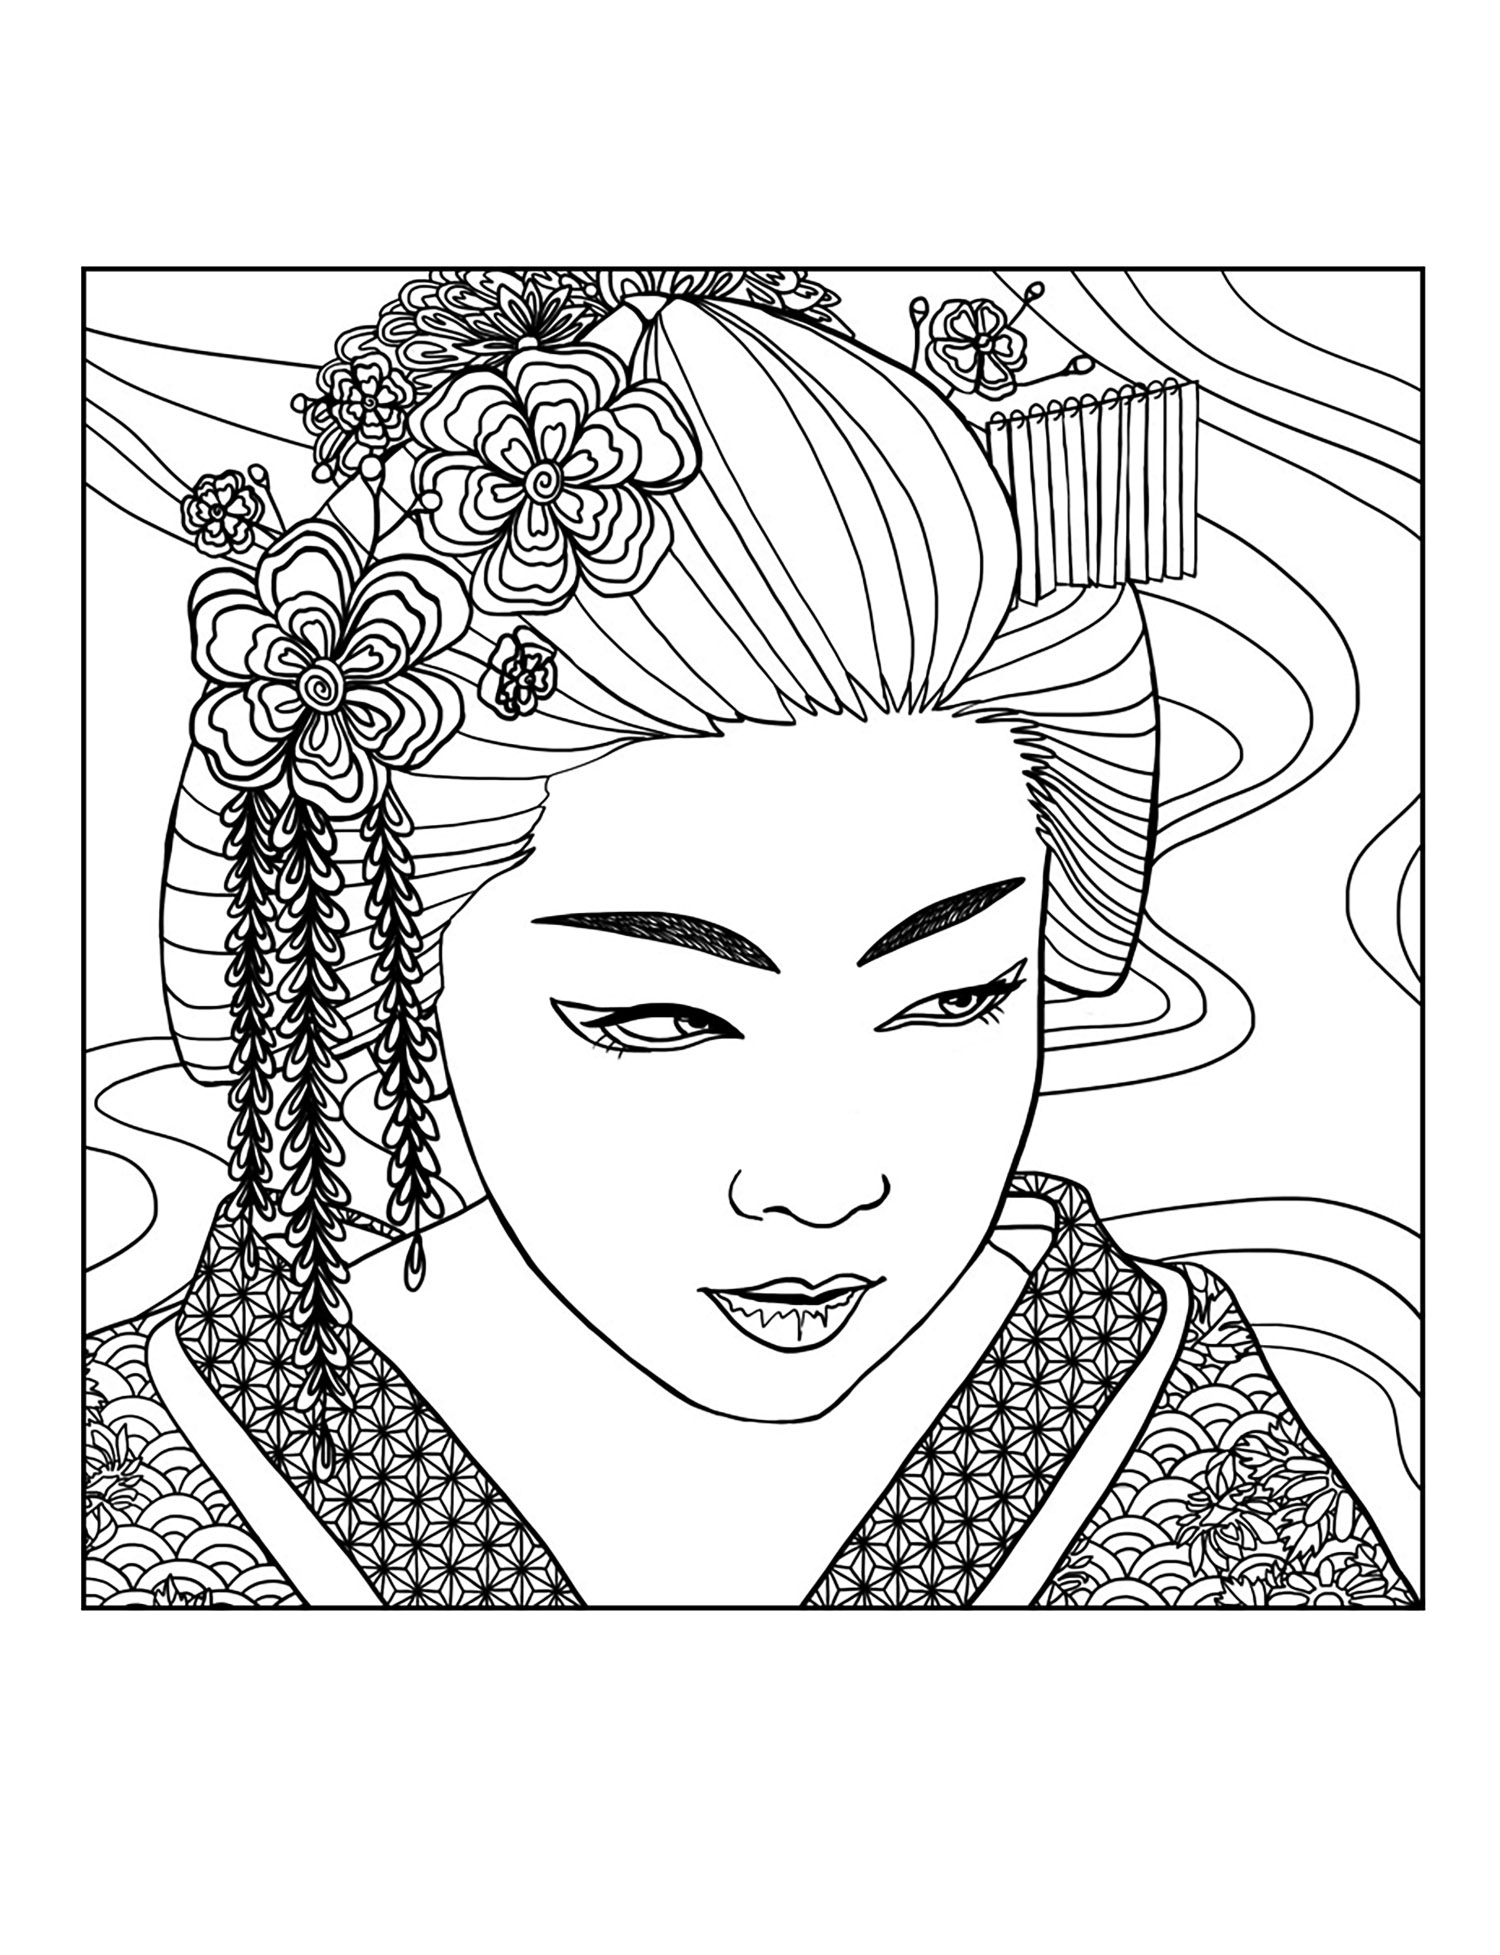 face coloring pages adults - photo#25